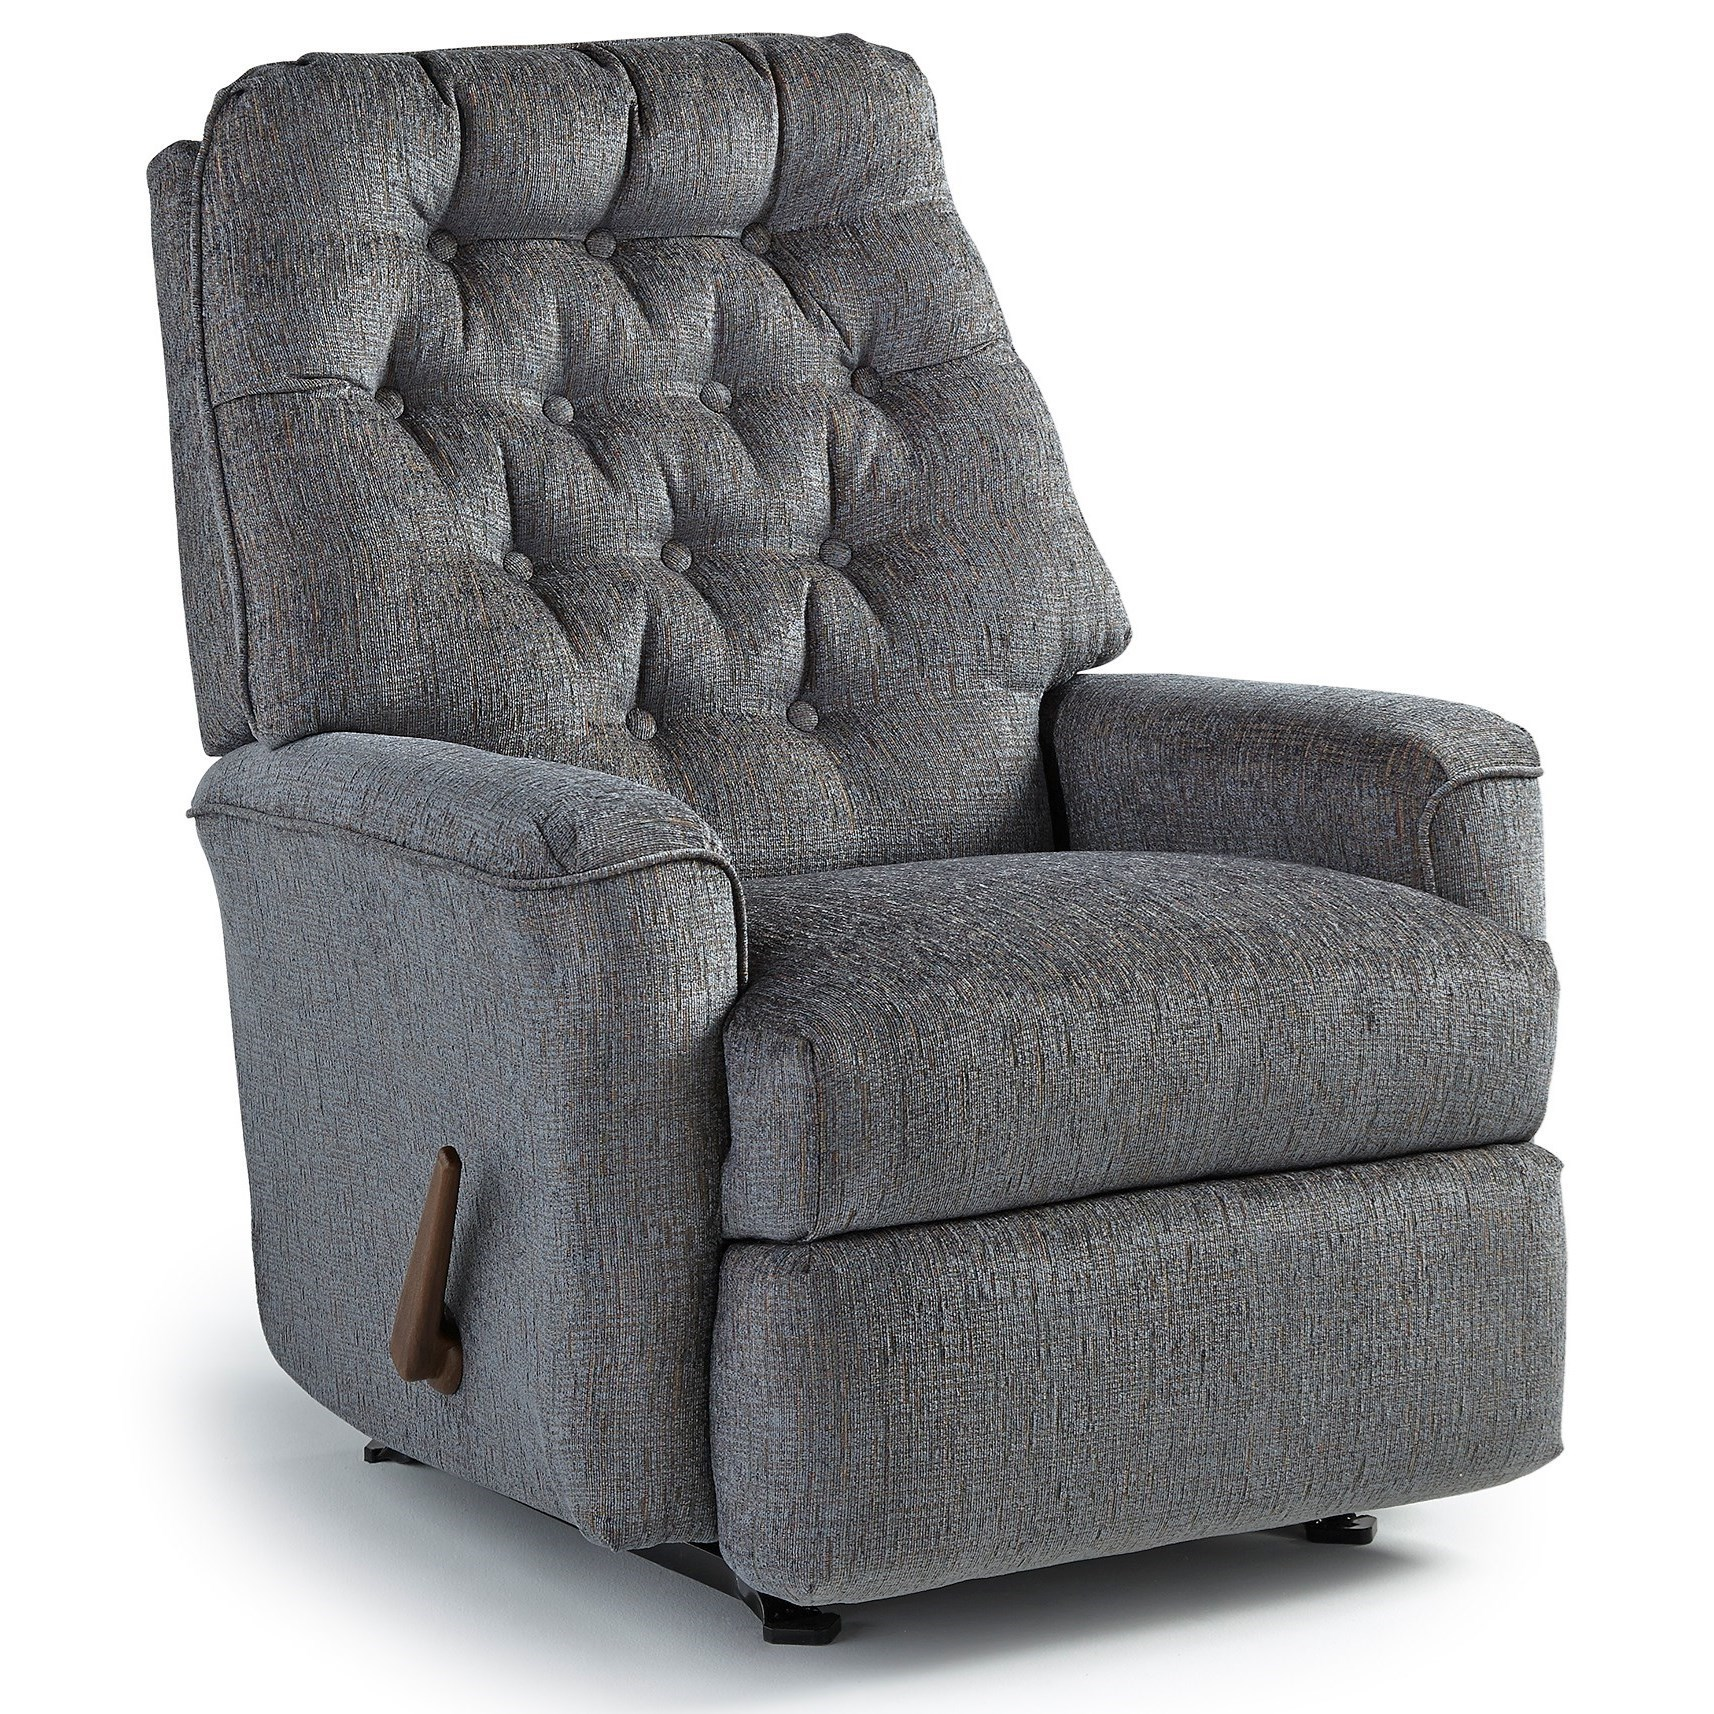 Swivel Rocker Recliner Chair Best Home Furnishings Medium Recliners Mexi Swivel Rocking